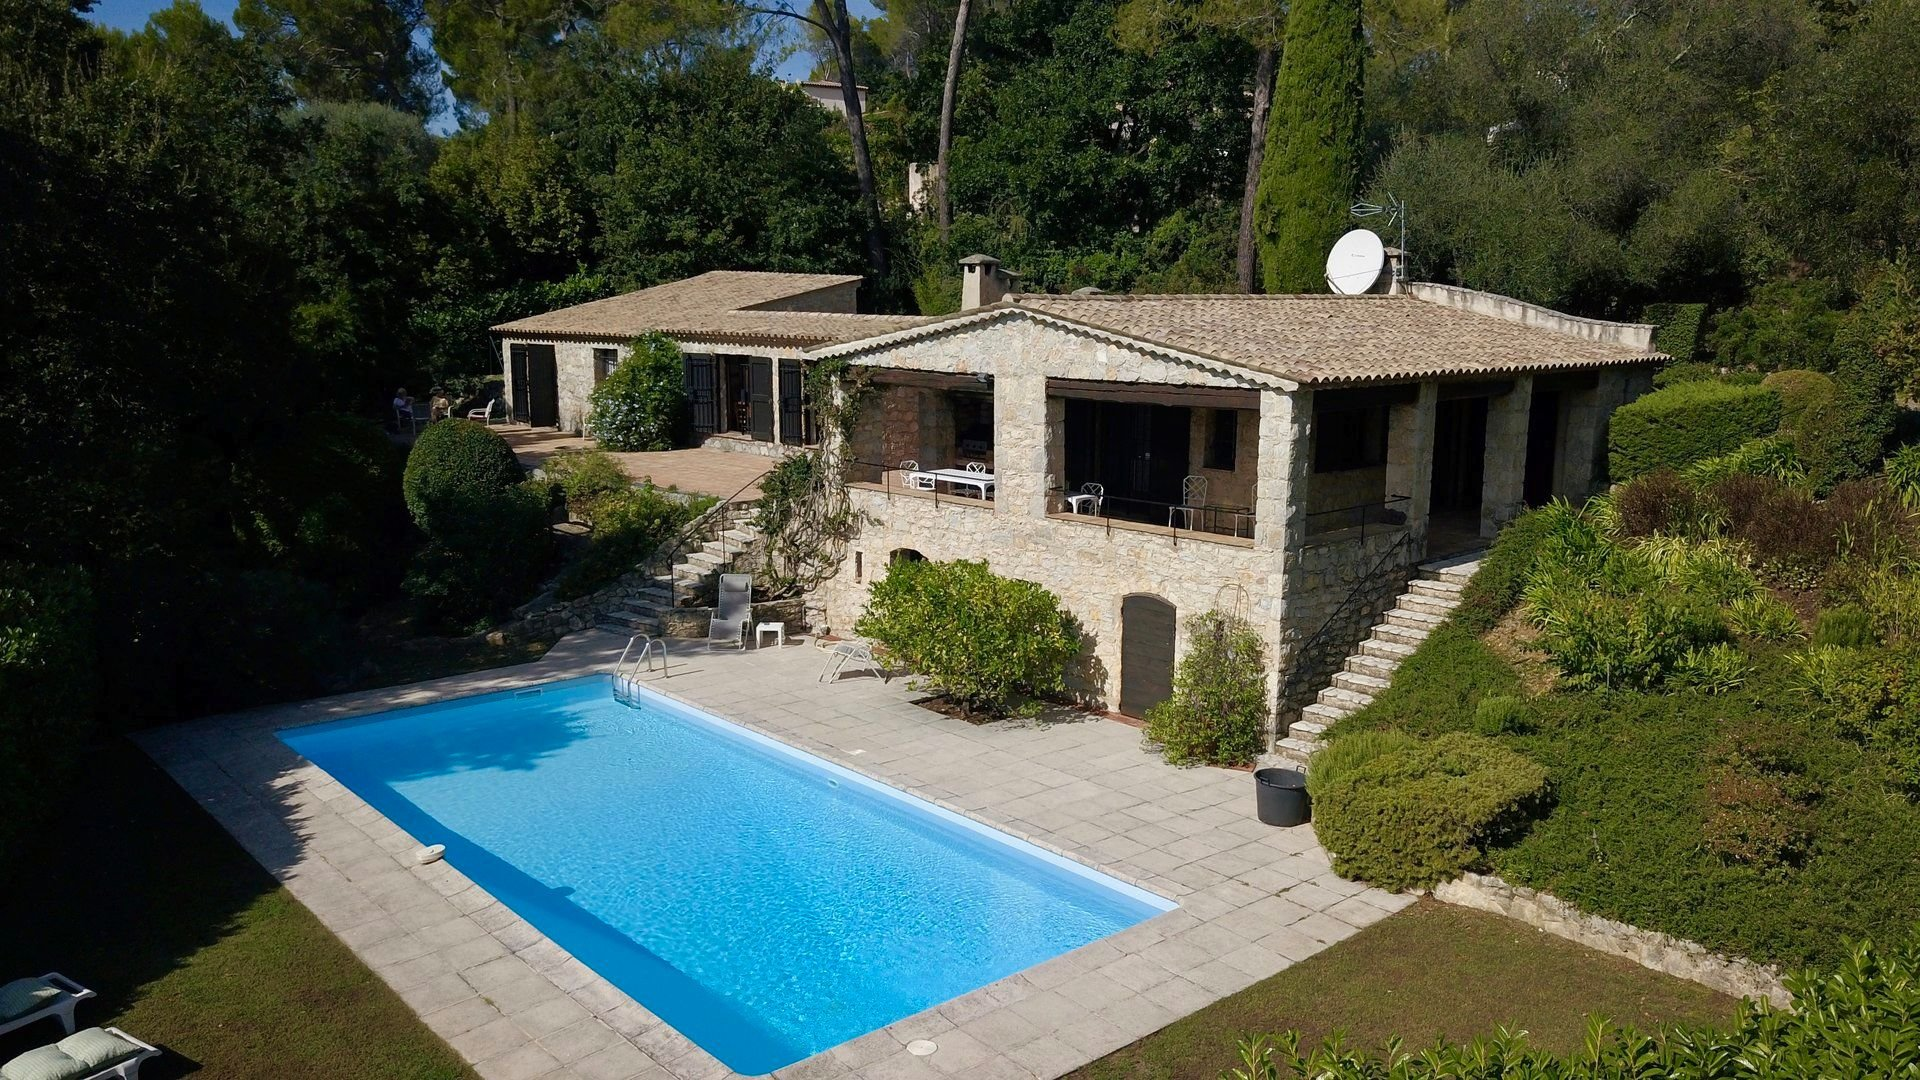 Stone house walking distance from the village of Valbonne